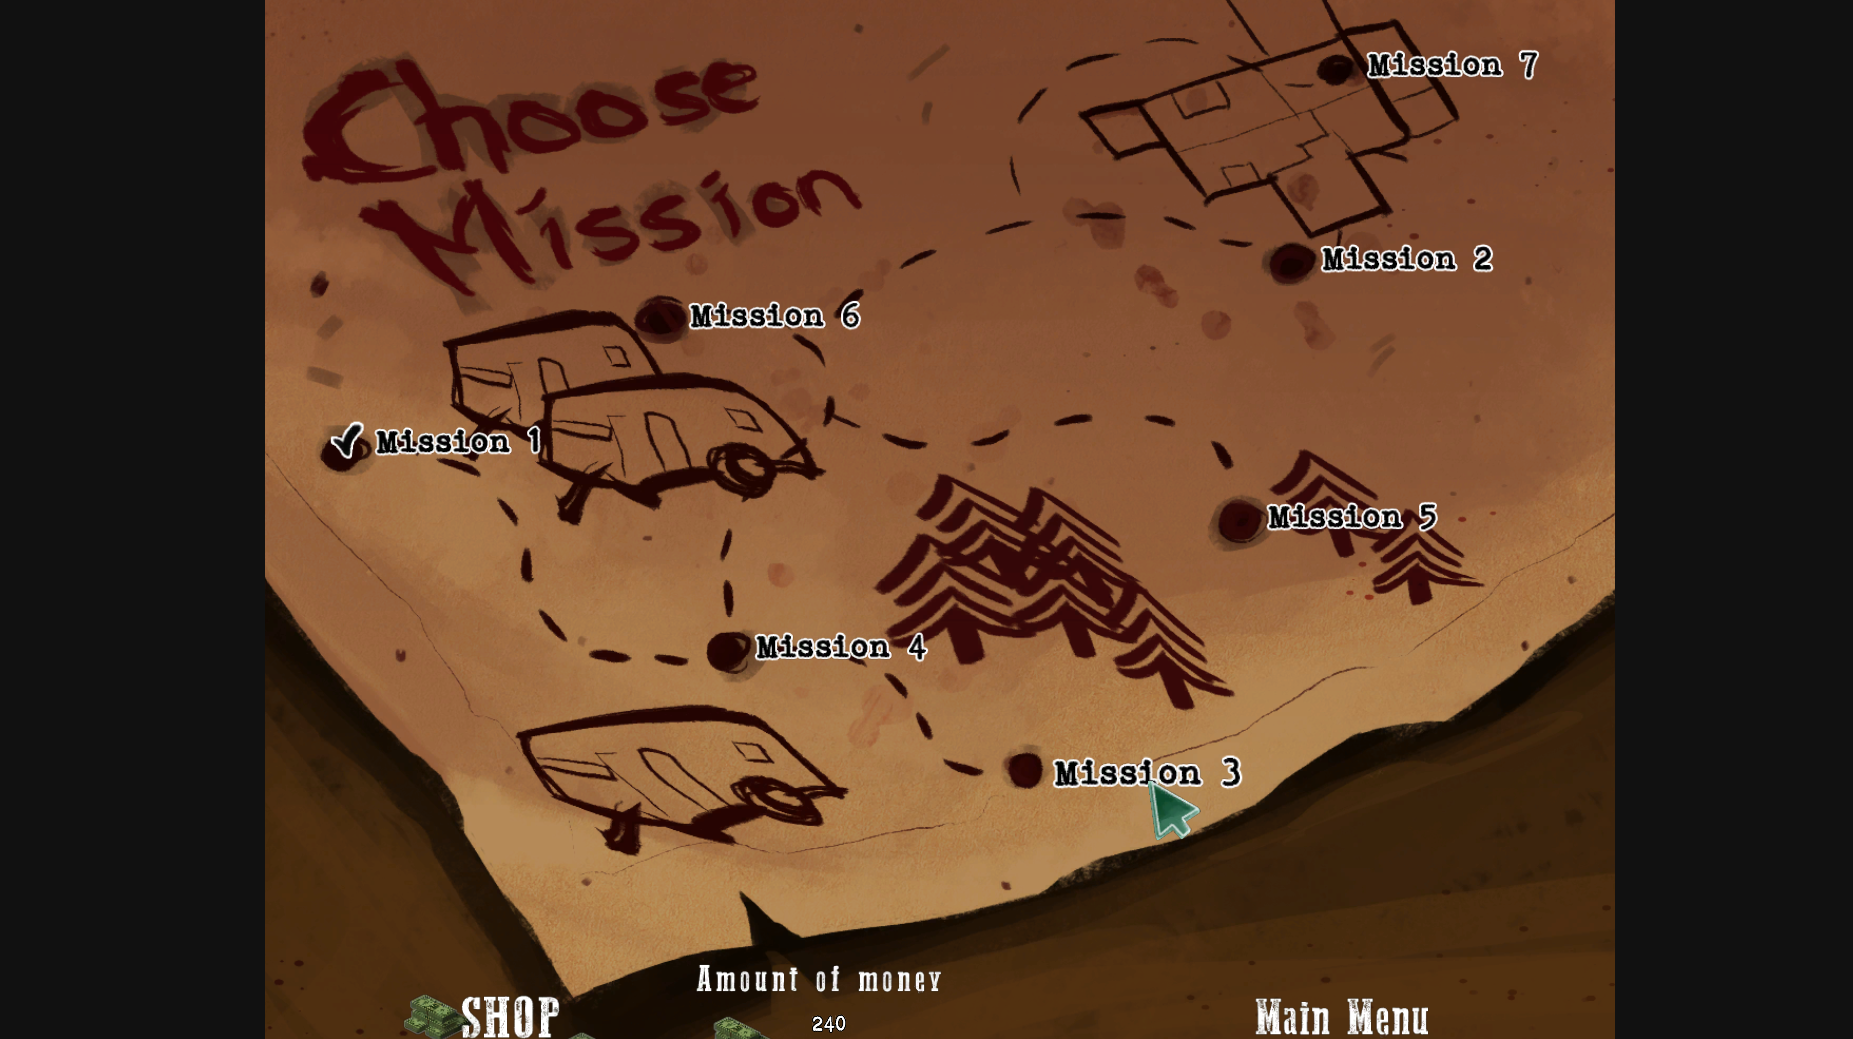 The mission selection screen.